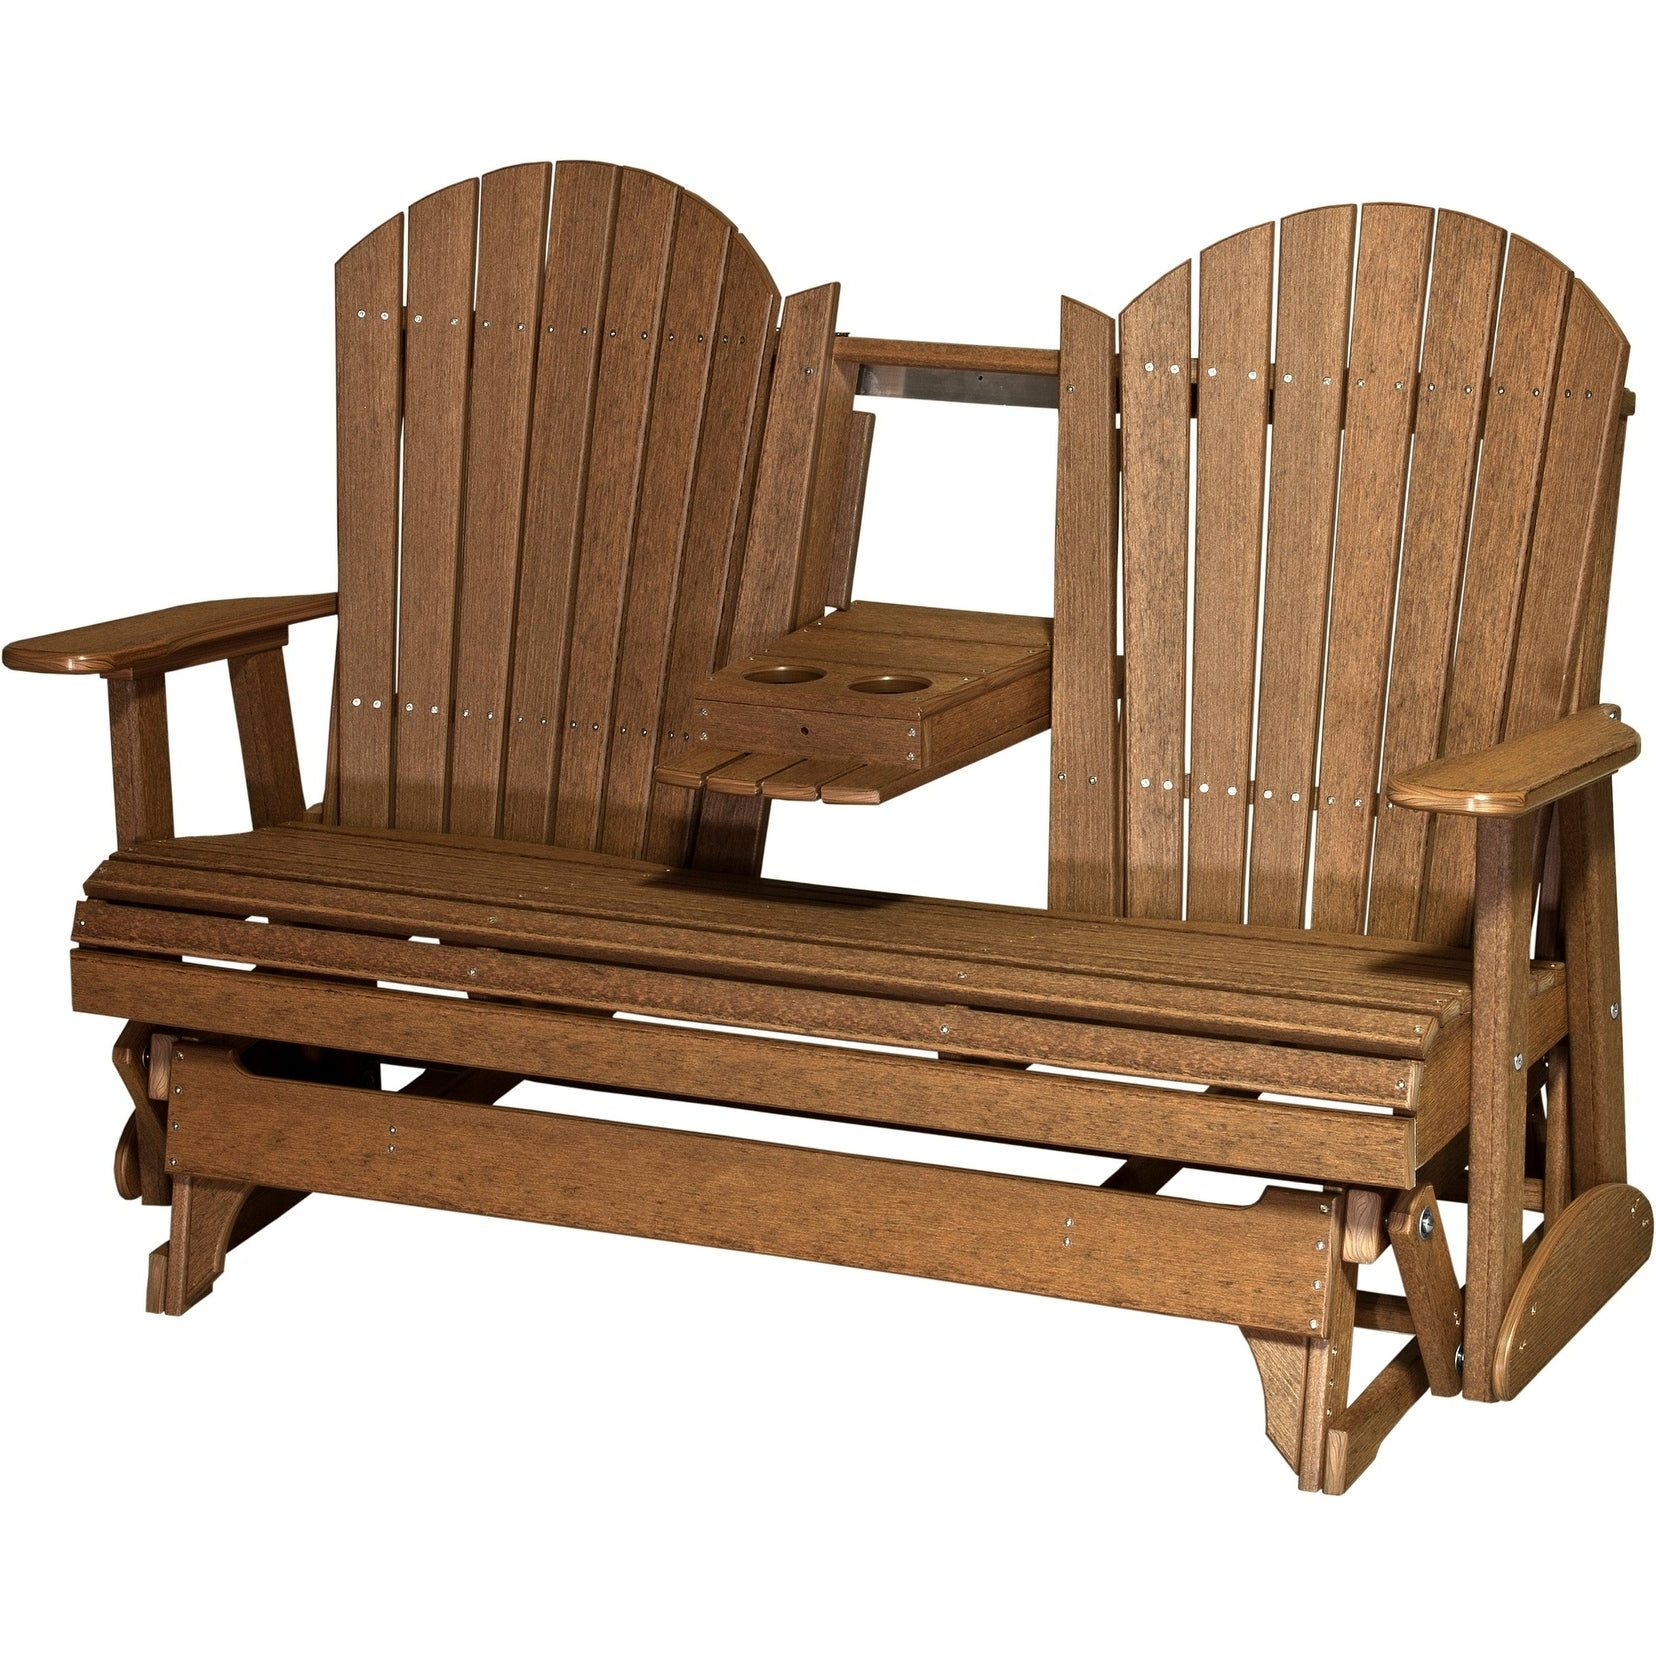 Outdoor 5' Adirondack Glider – Recycled Plastic Inside Famous Classic Adirondack Glider Benches (Gallery 12 of 30)